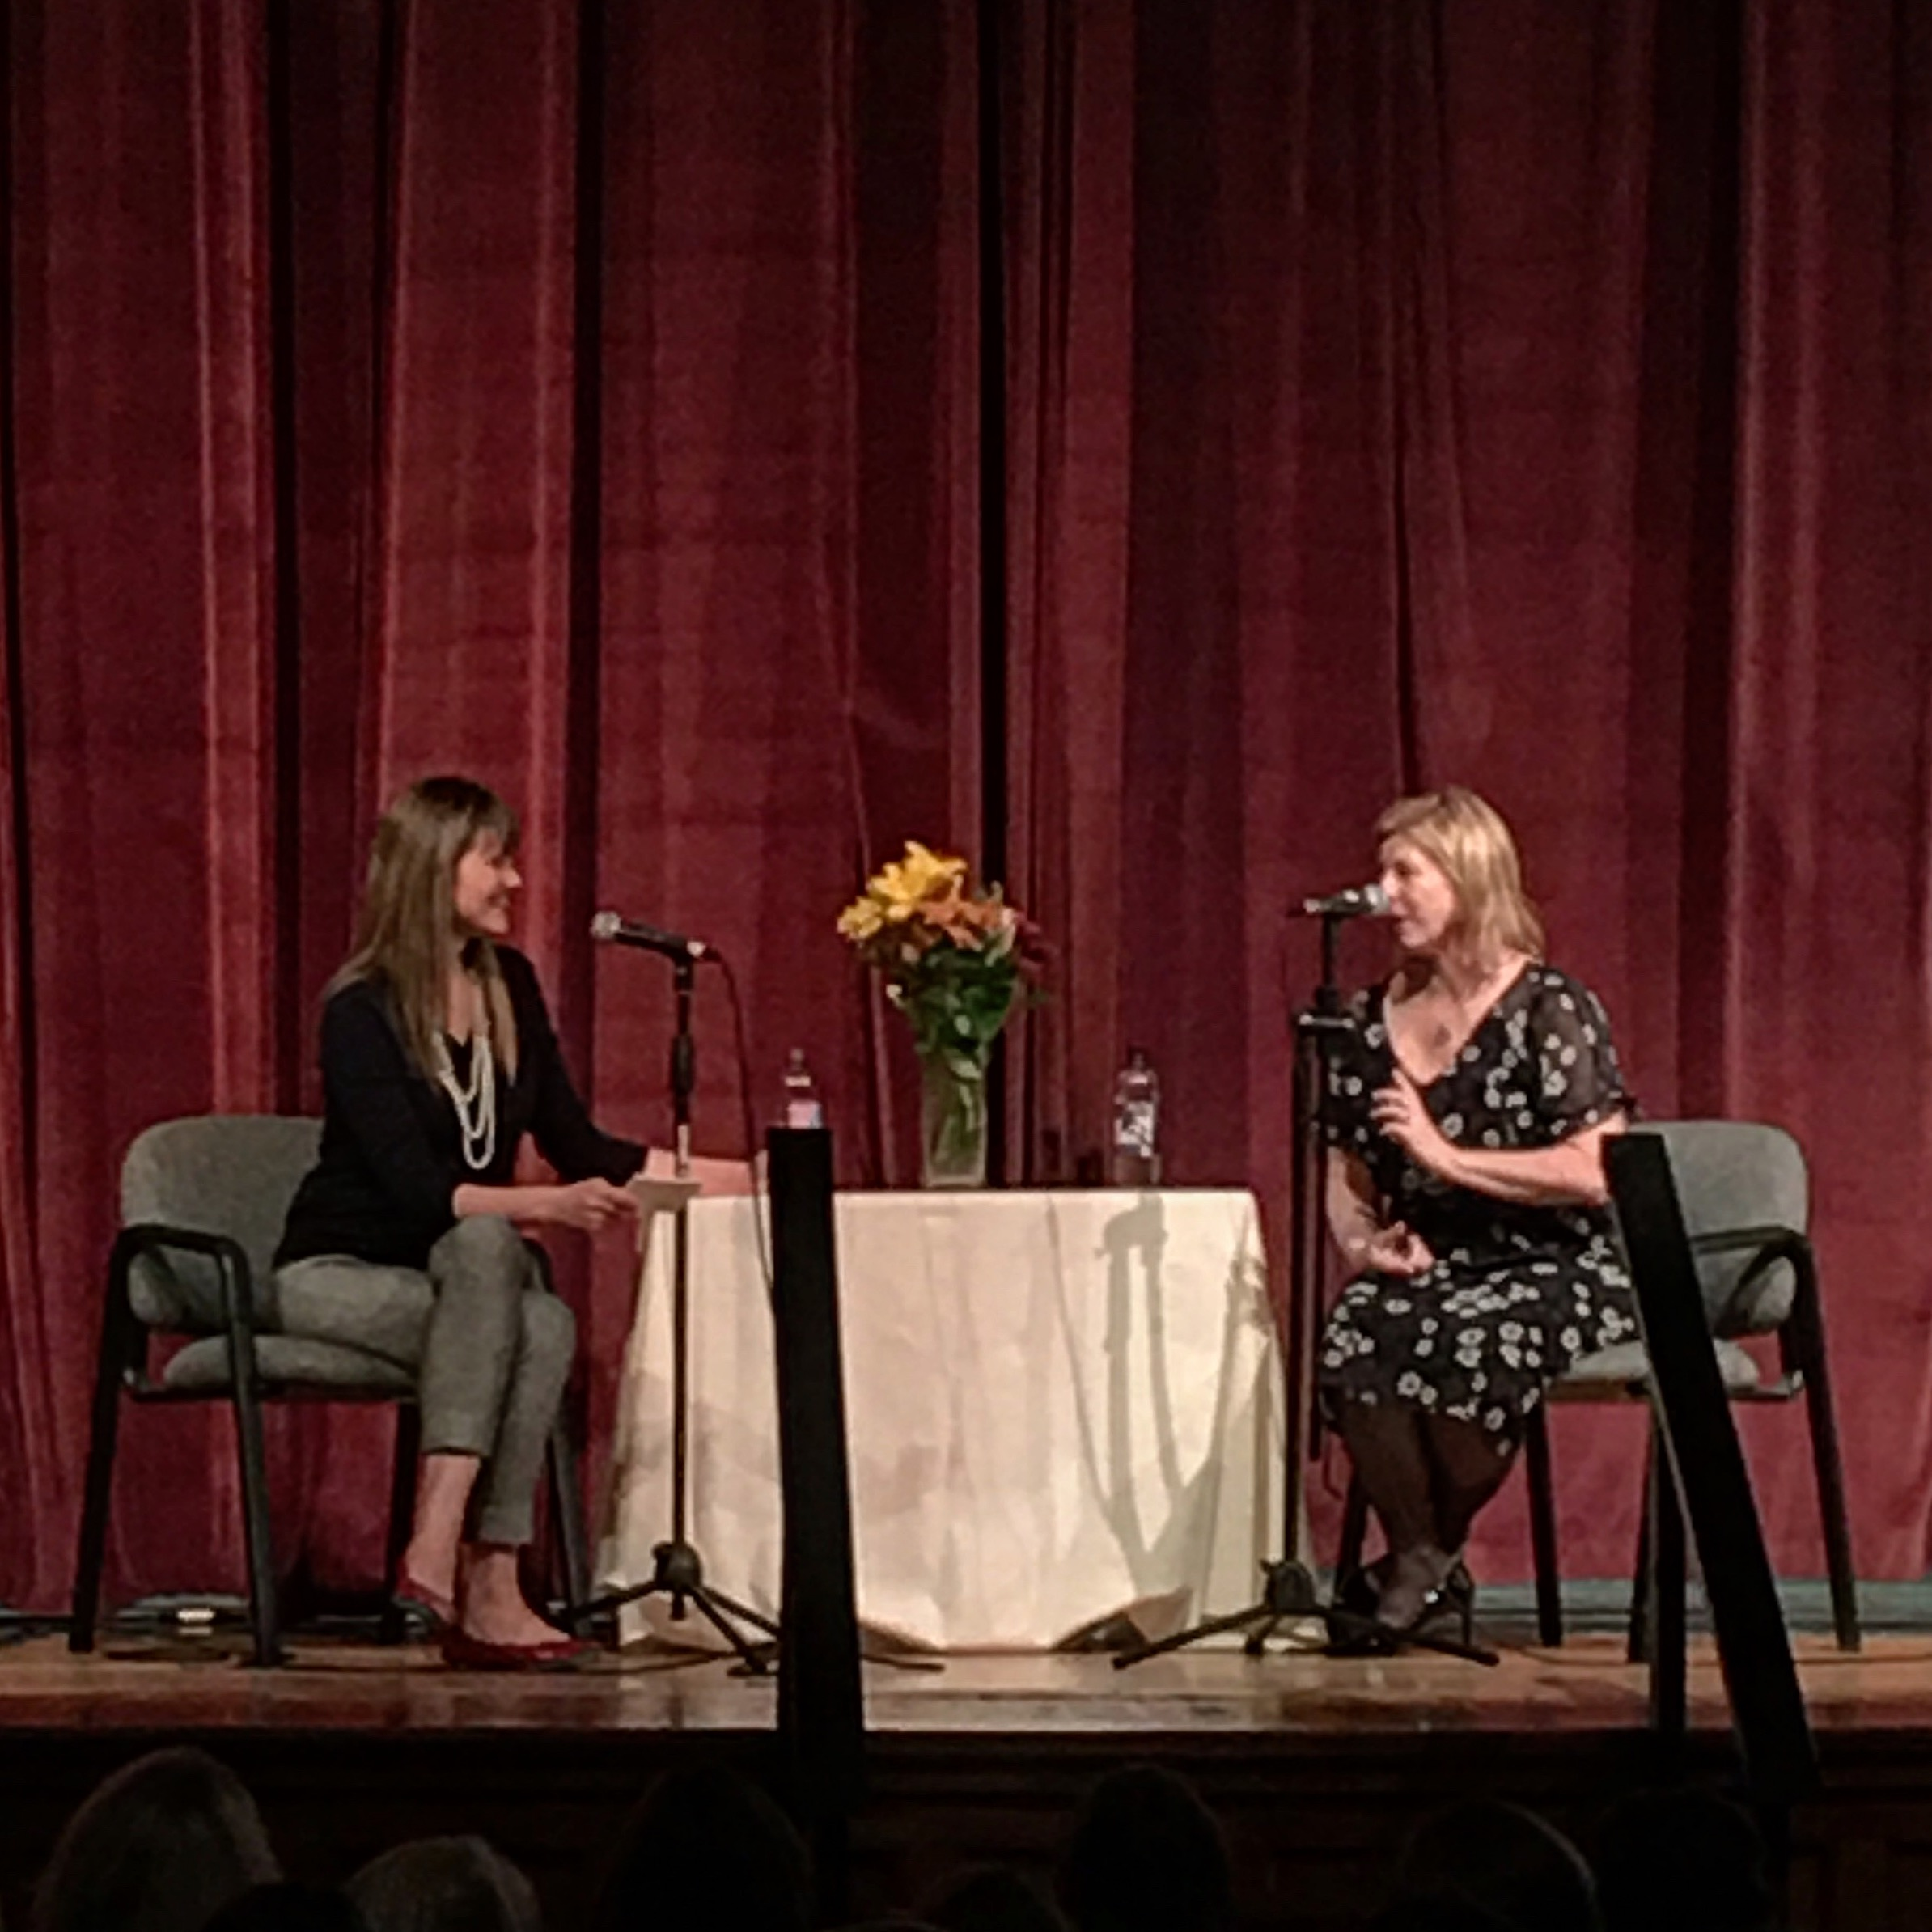 Liane Moriarty and Anne Bogel